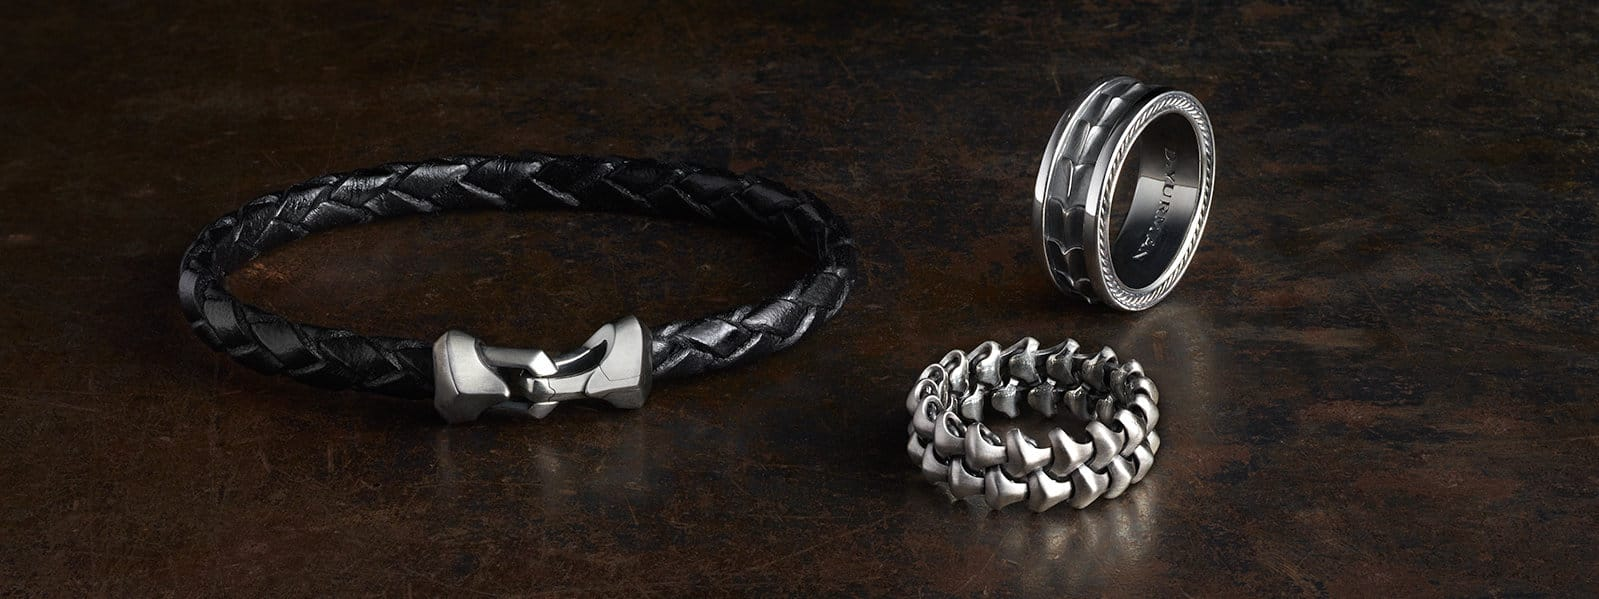 Armory® black leather bracelet and band rings in sterling silver on a dark-reddish, scratched stone.